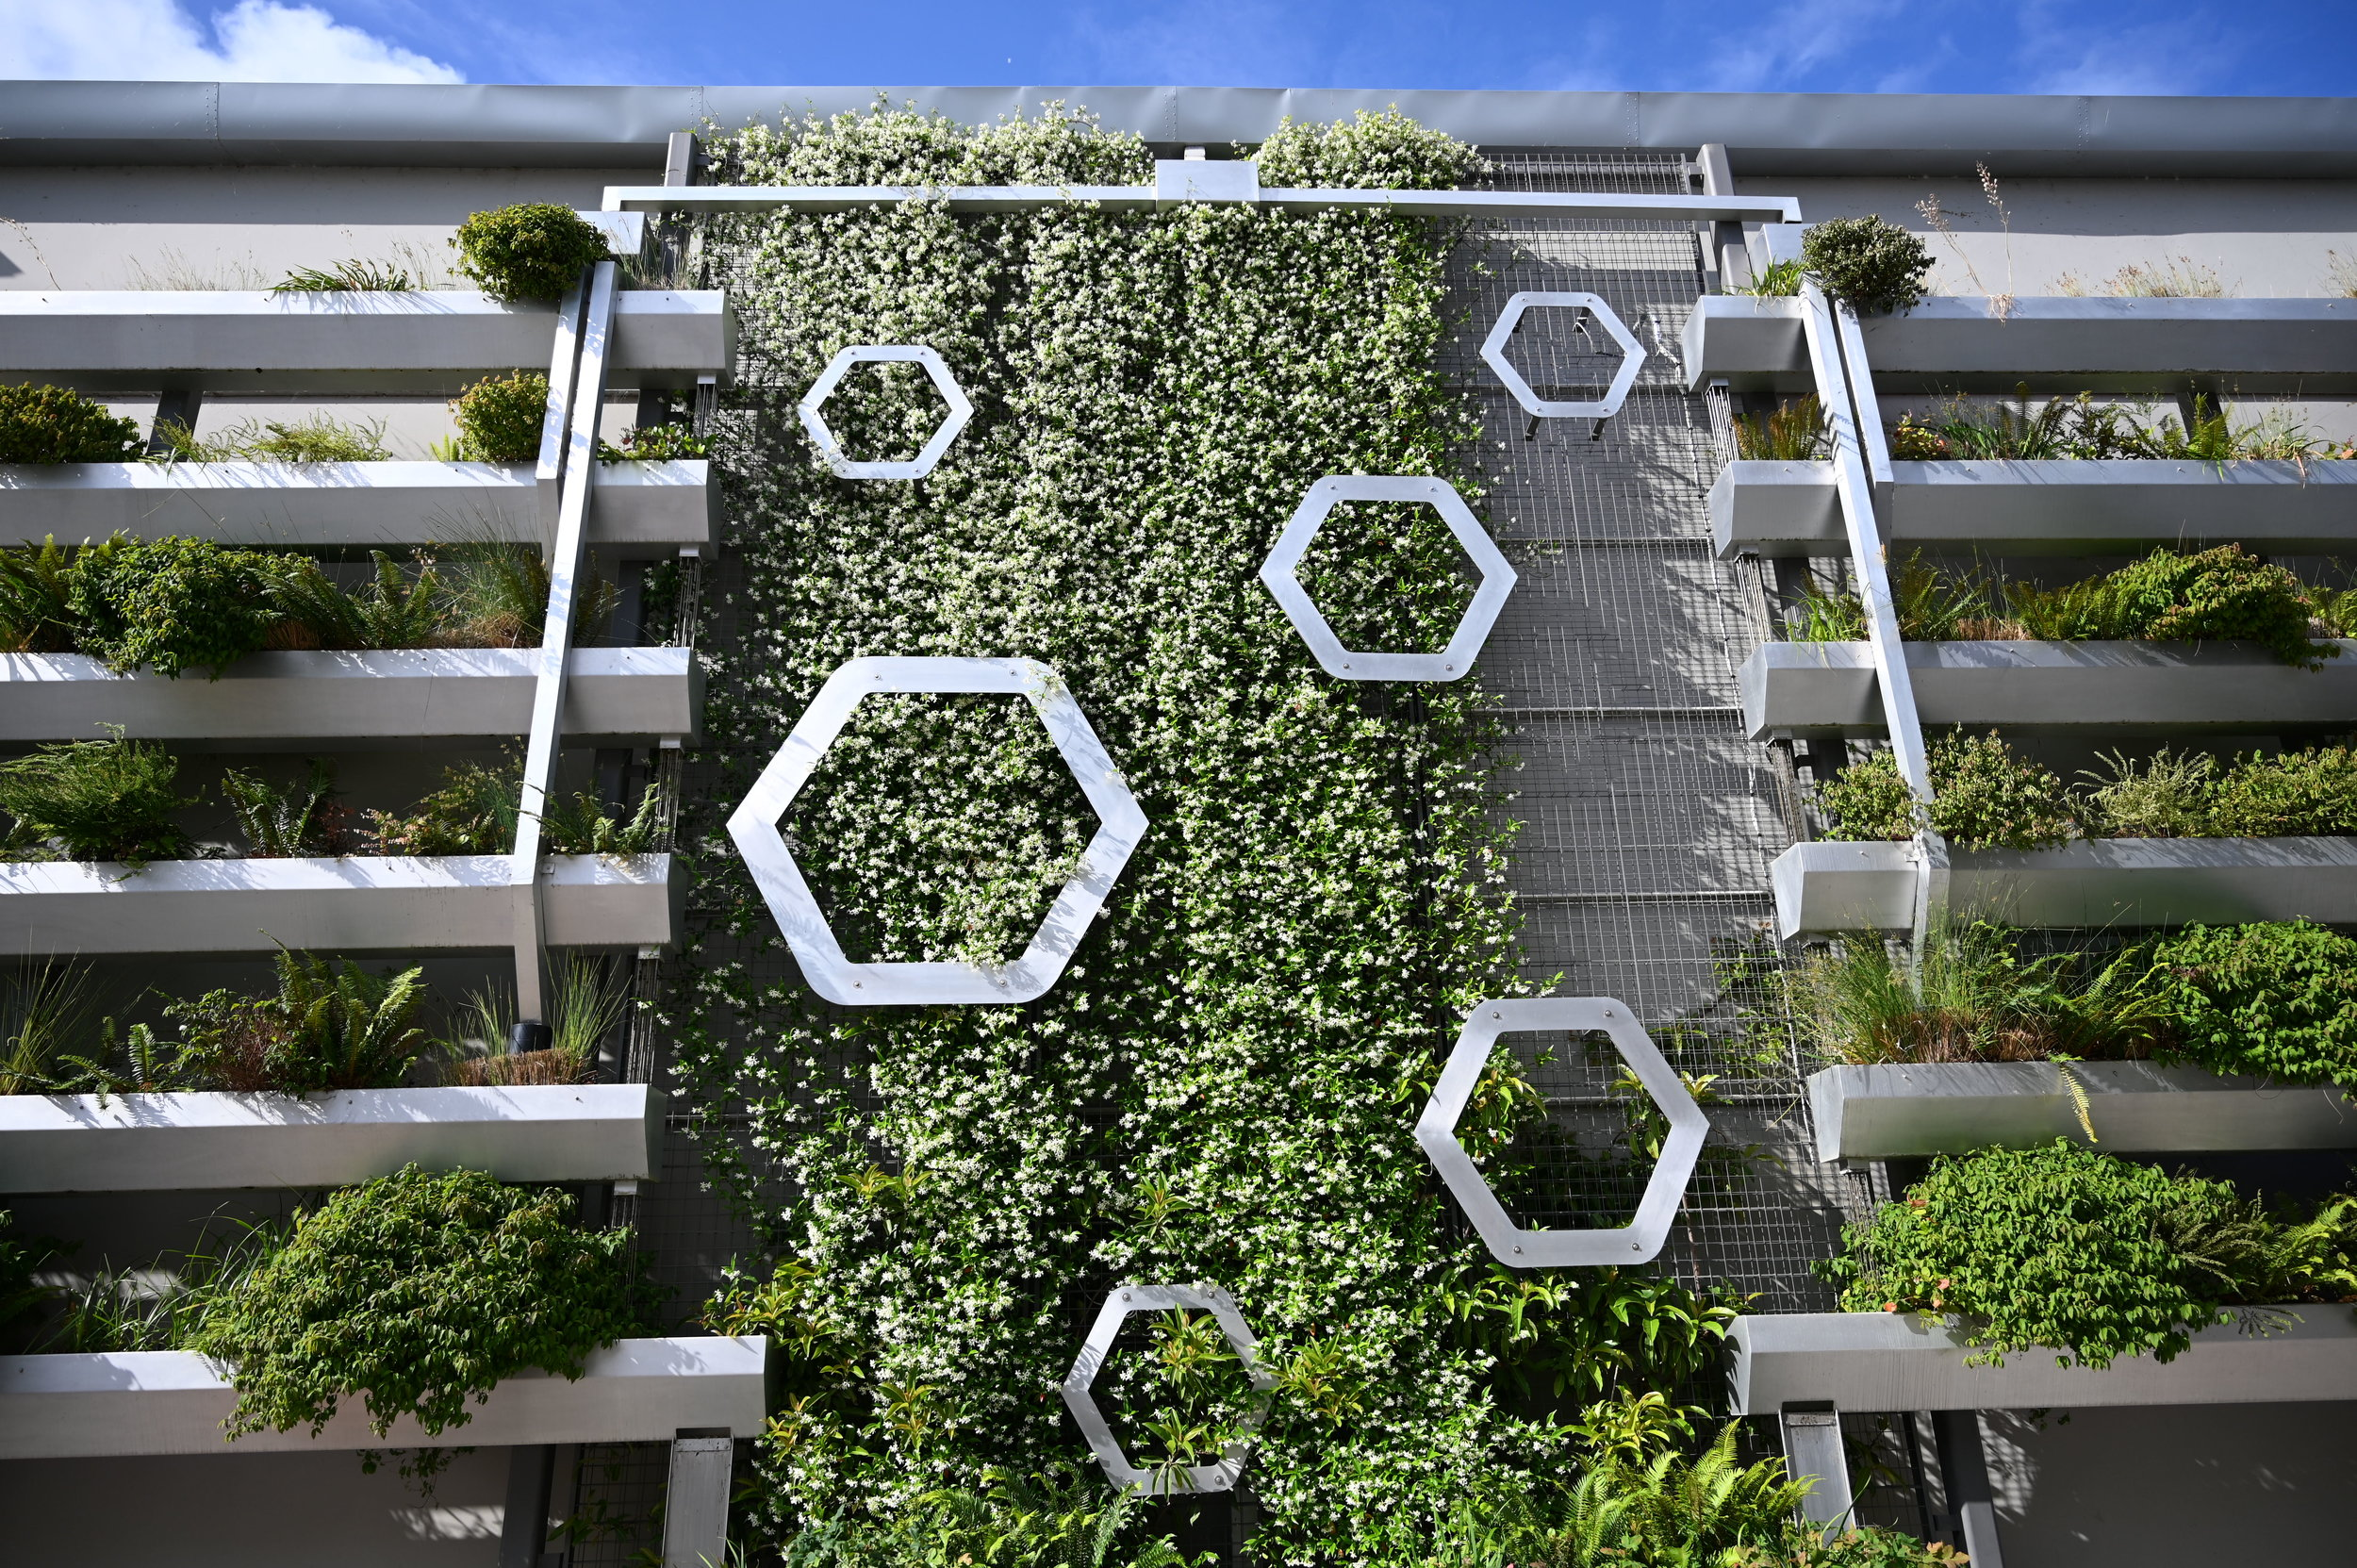 Two Story metal structure with hexagon shapes and basins filled with verdant plants